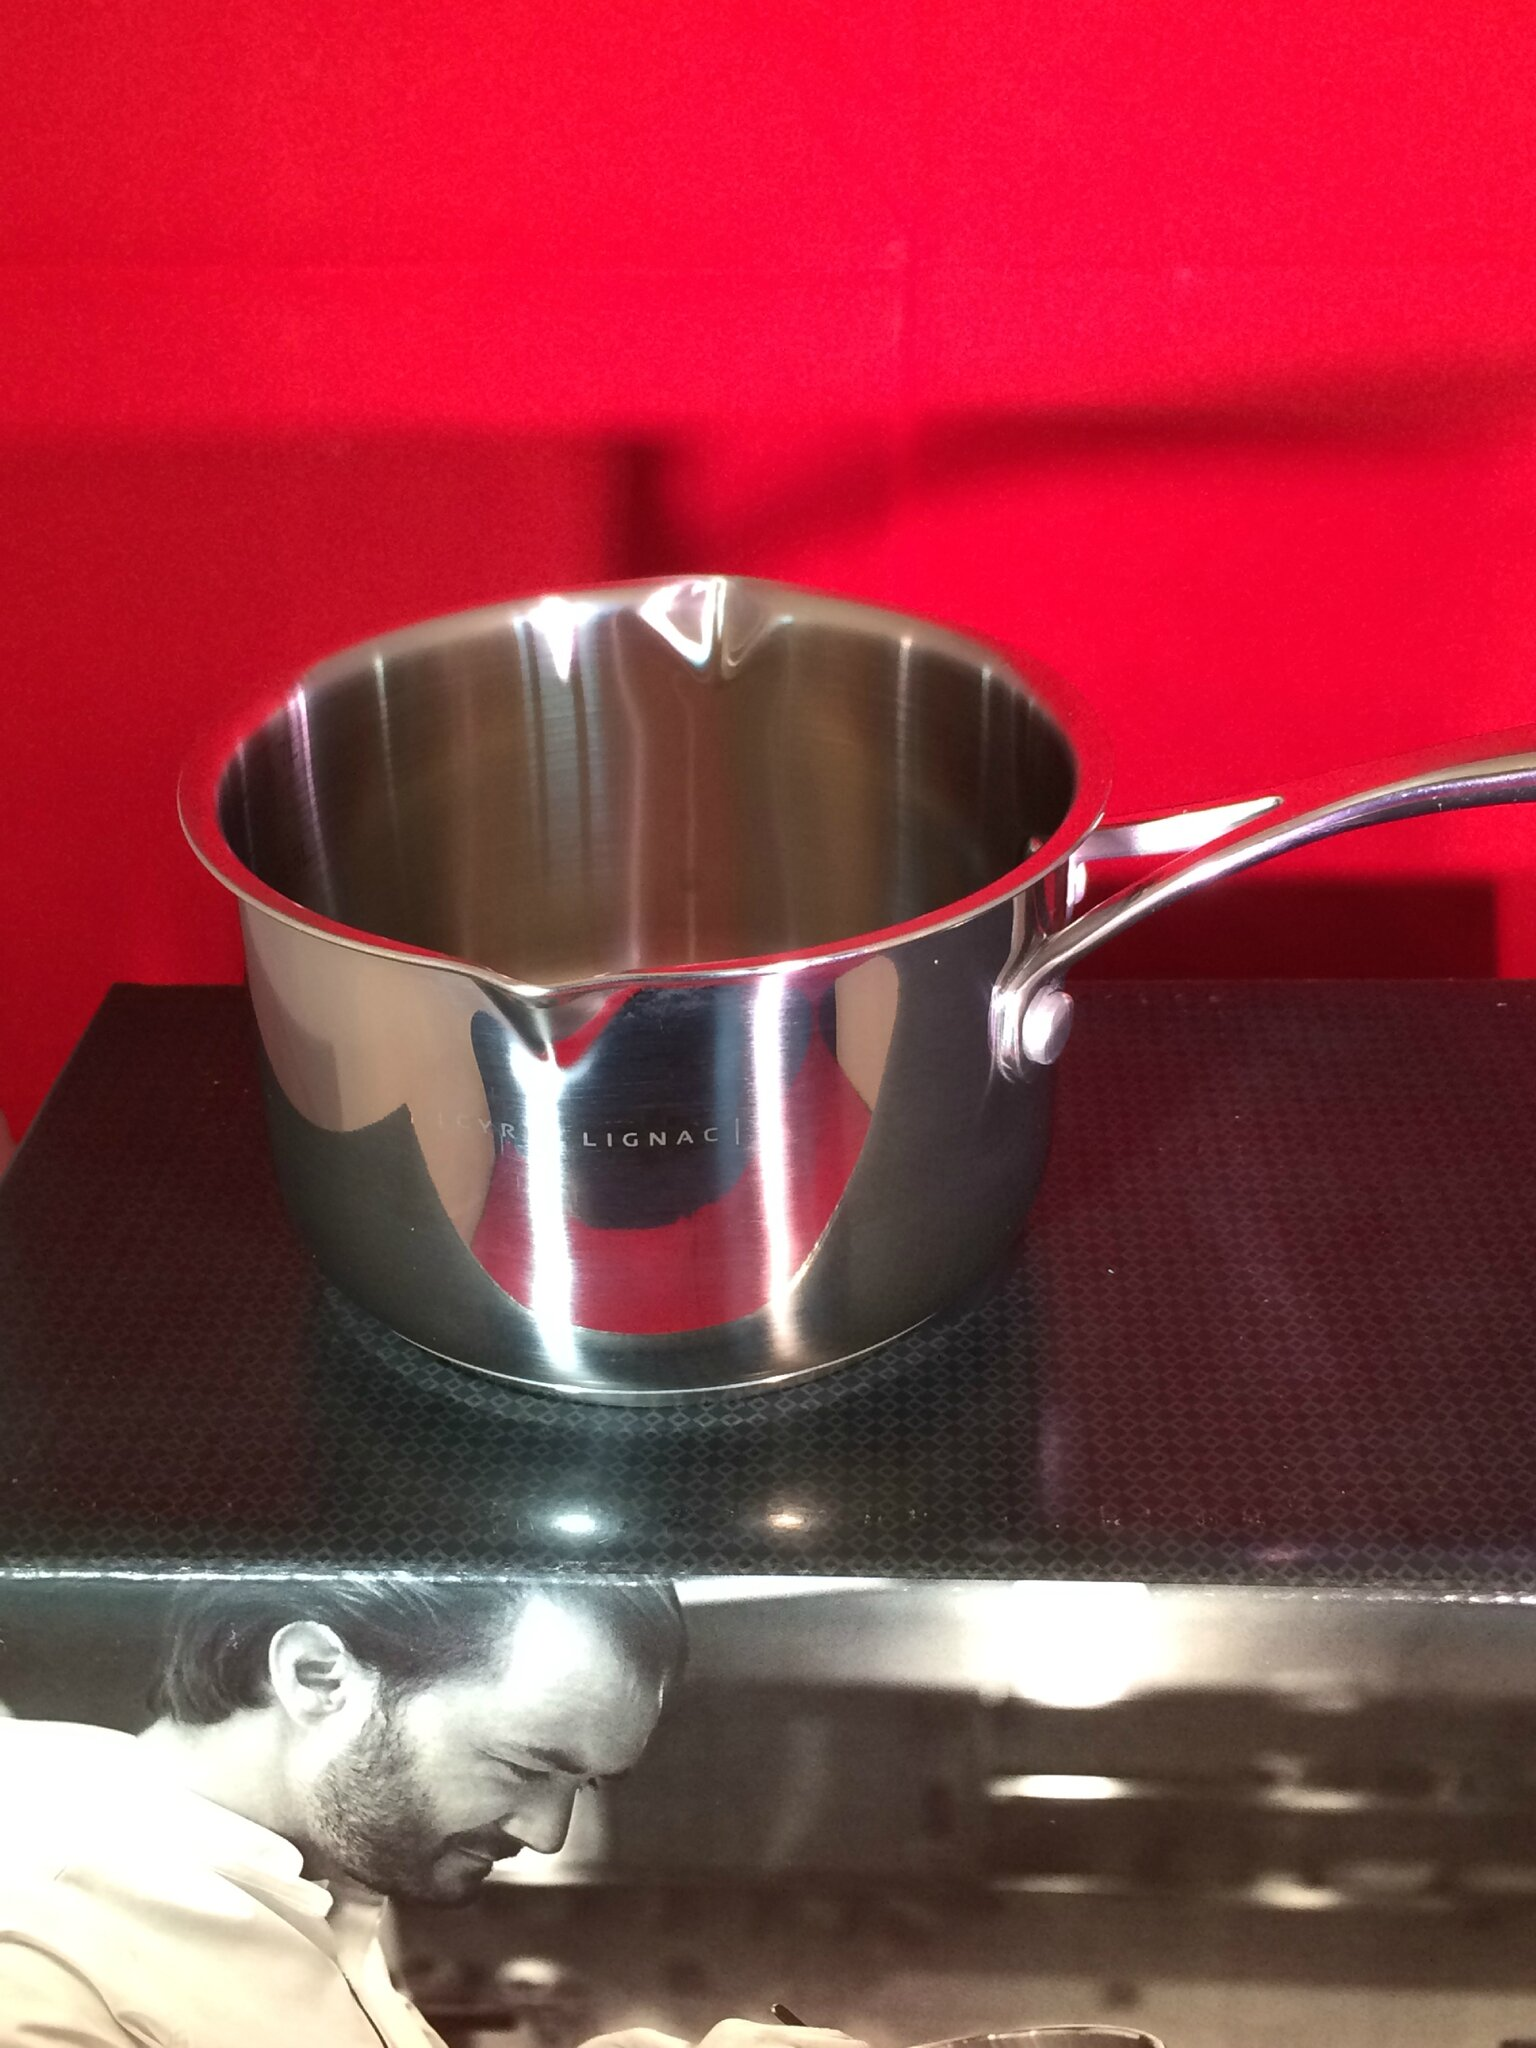 cocotte en fonte carrefour cocotte ovale fonte ficelle cm tous feux dont induction with cocotte - Faitout Induction Carrefour